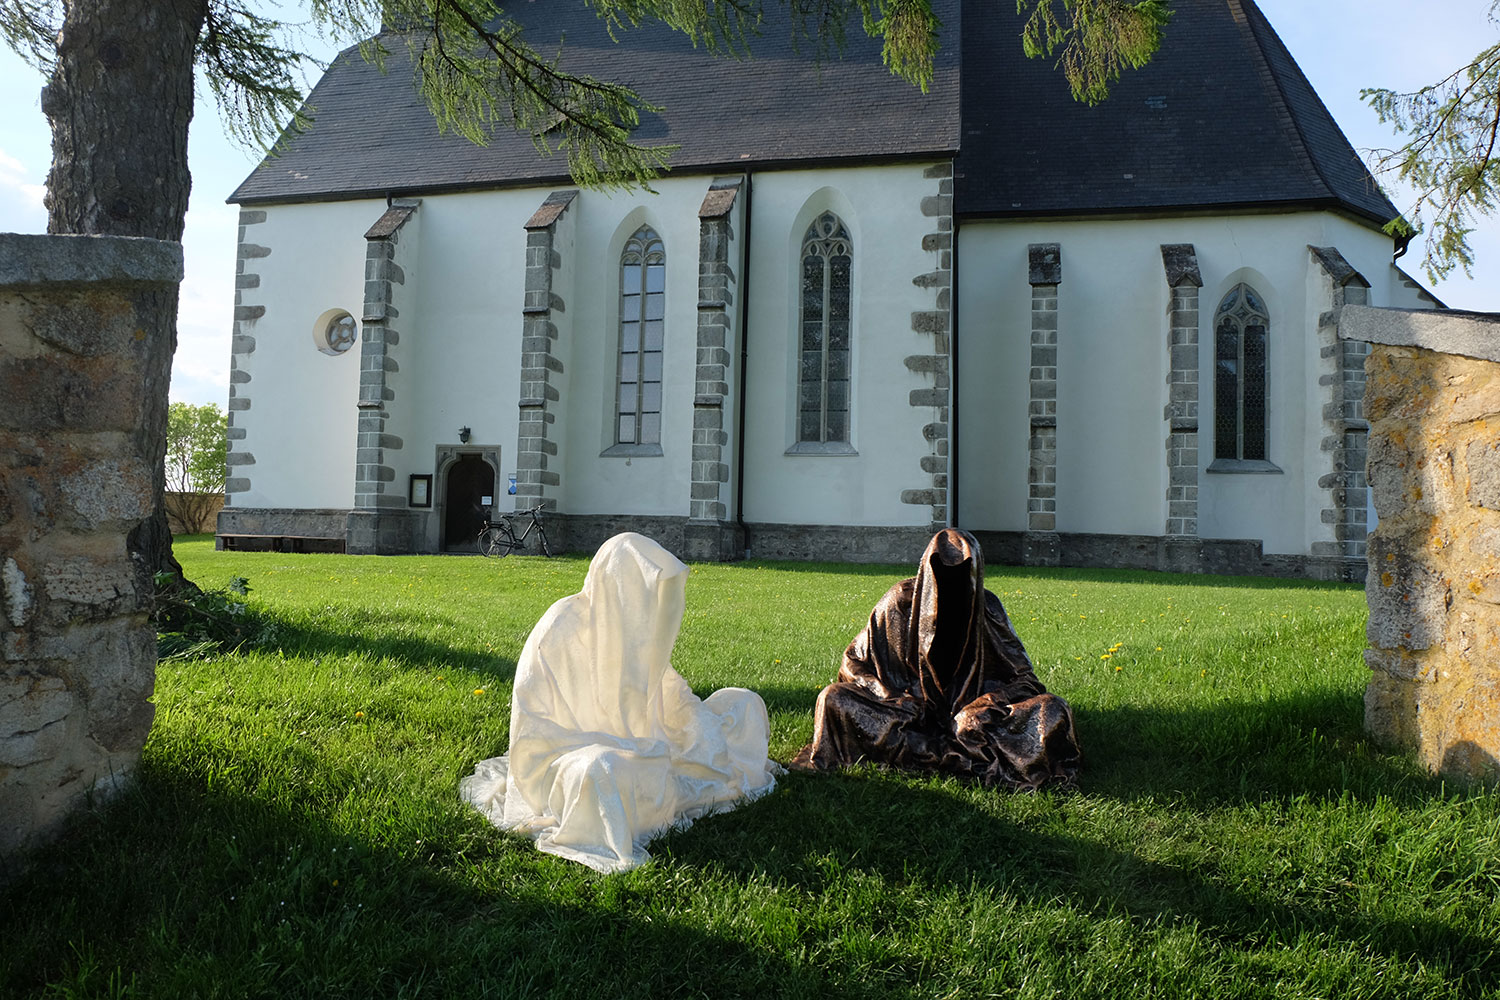 guardians-of-time-manfred-kili-kielnhofer-contemporary-fine-art-design-sculpture-antique-religion-chirch-gotic-2586